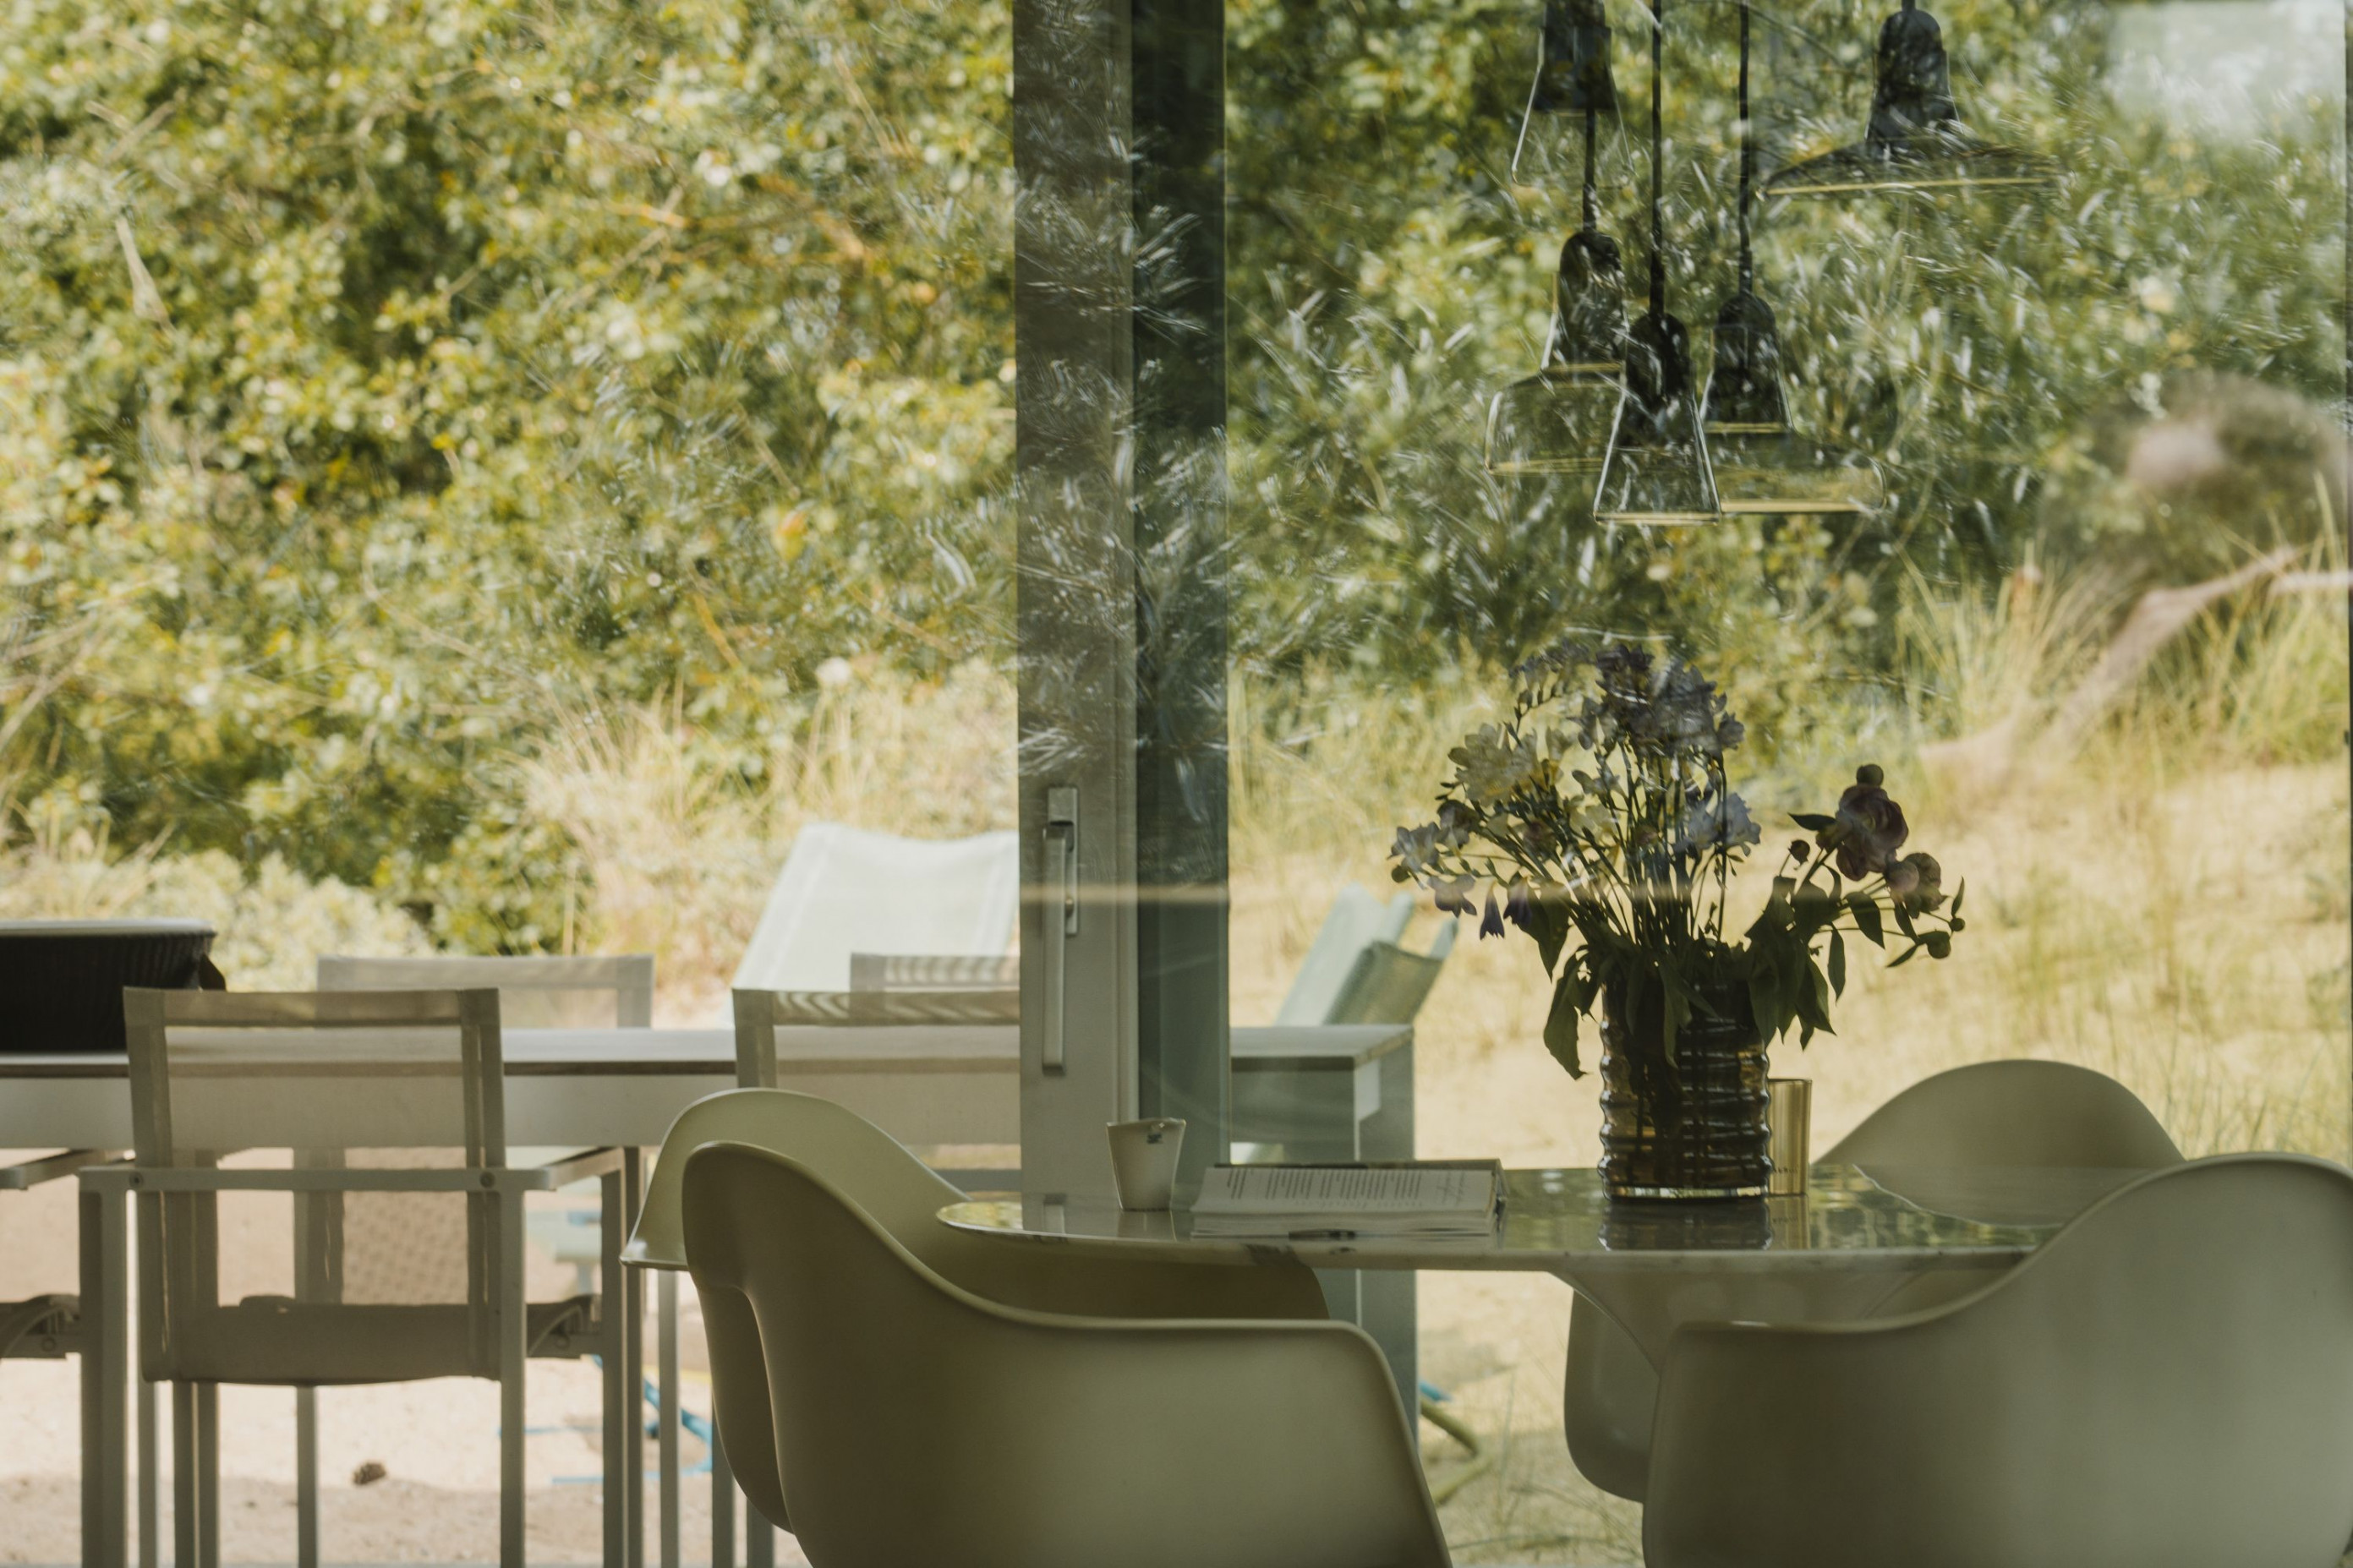 Duinappartement - Arne Jacobsen - Pic by Dayo Clinckspoor42